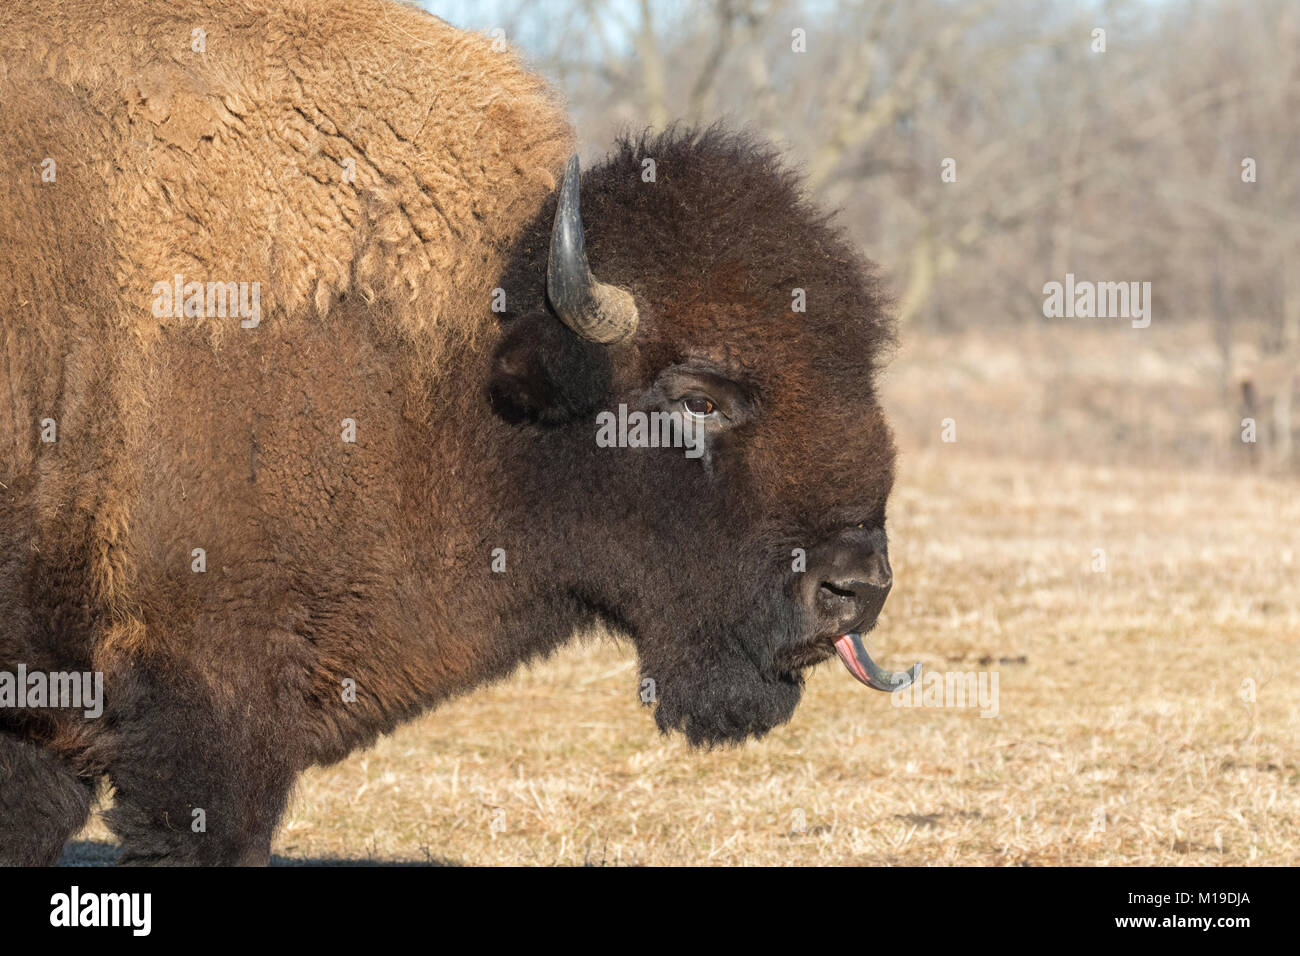 American bison (Bison bison) at Neal Smith Wildlife Refuge - Stock Image